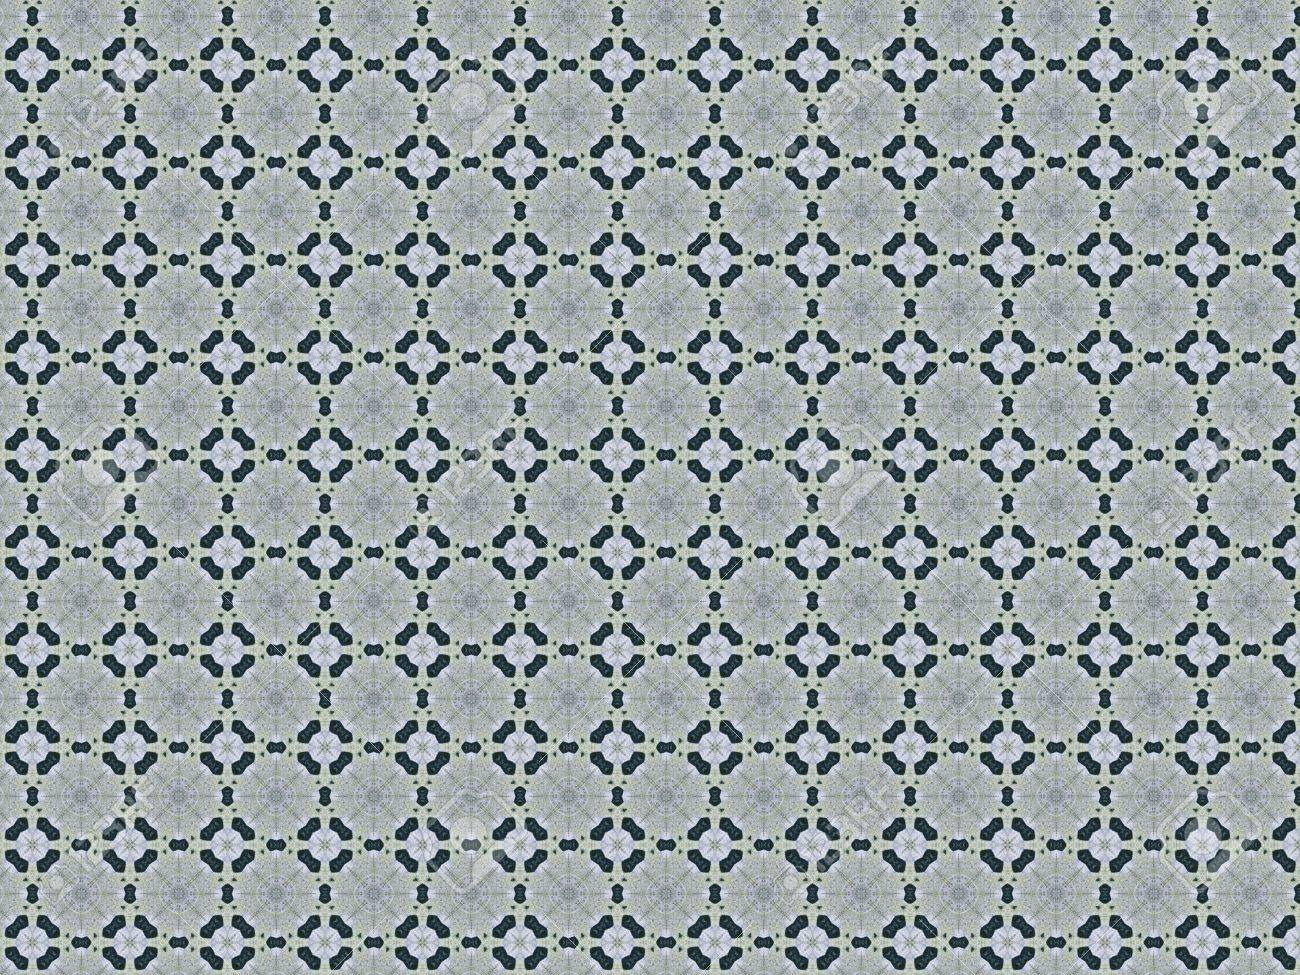 Vintage shabby background with classy patterns  Seamless vintage delicate colored wallpaper  Geometric or floral pattern on paper texture in grunge style Stock Photo - 17086310